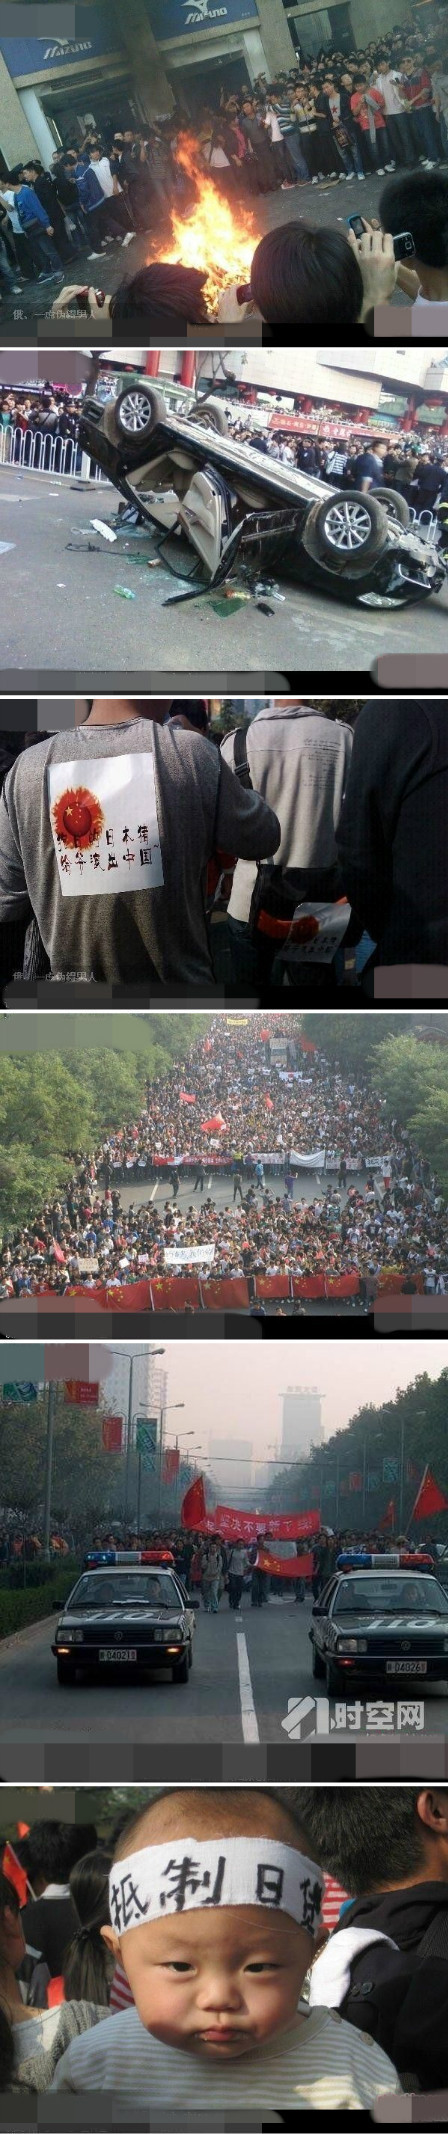 Weibo: Anti-Japan Protests